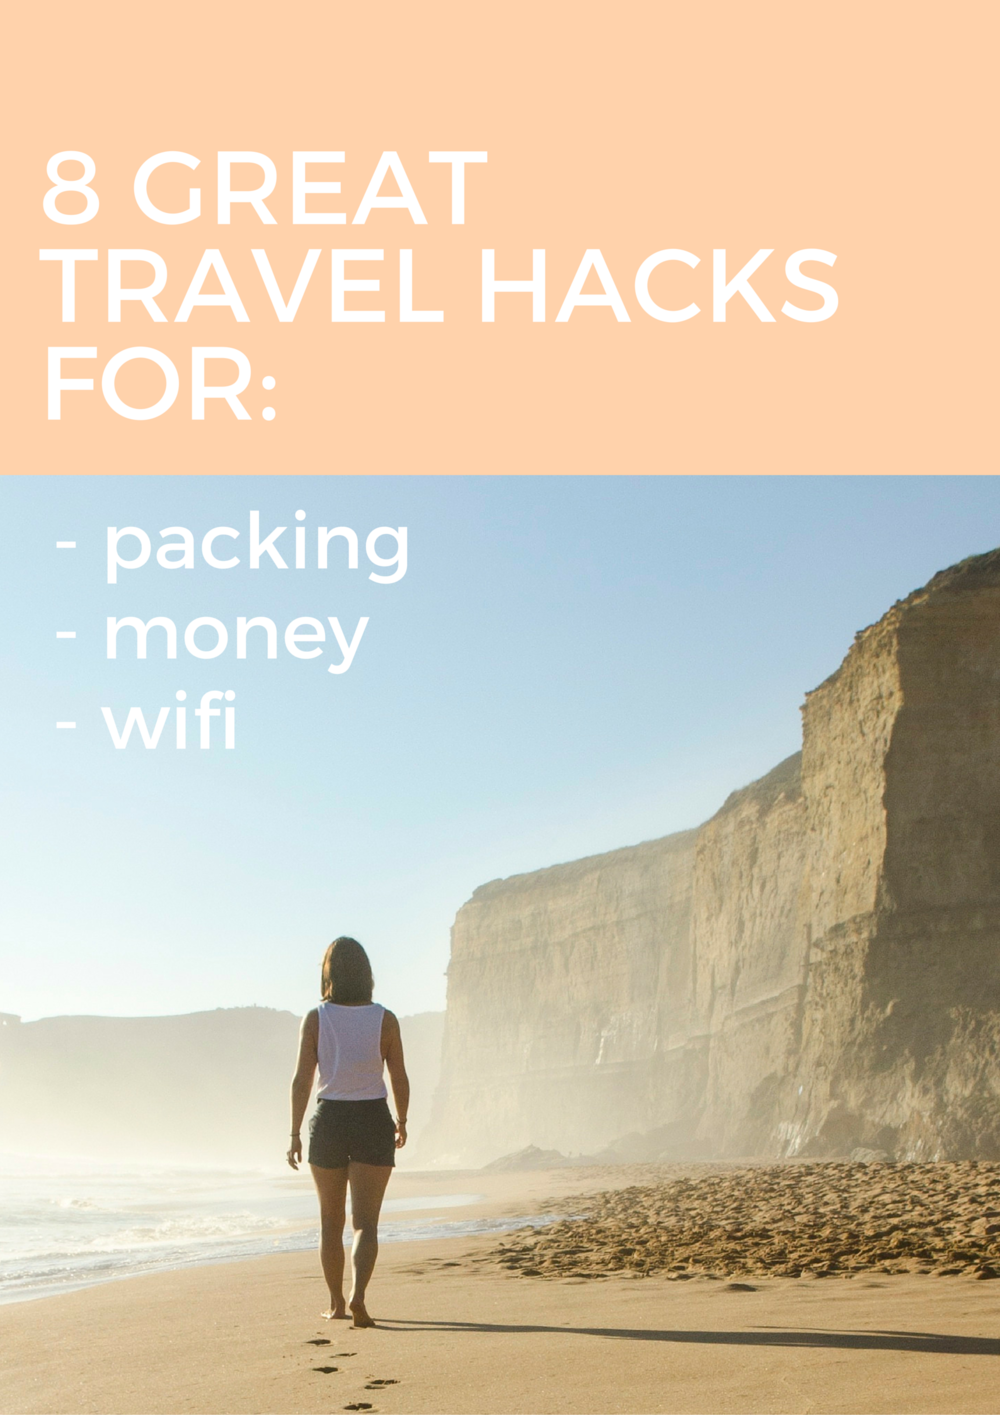 8 travel hacks for packing, money, and wifi! These tricks are great for any trip abroad!